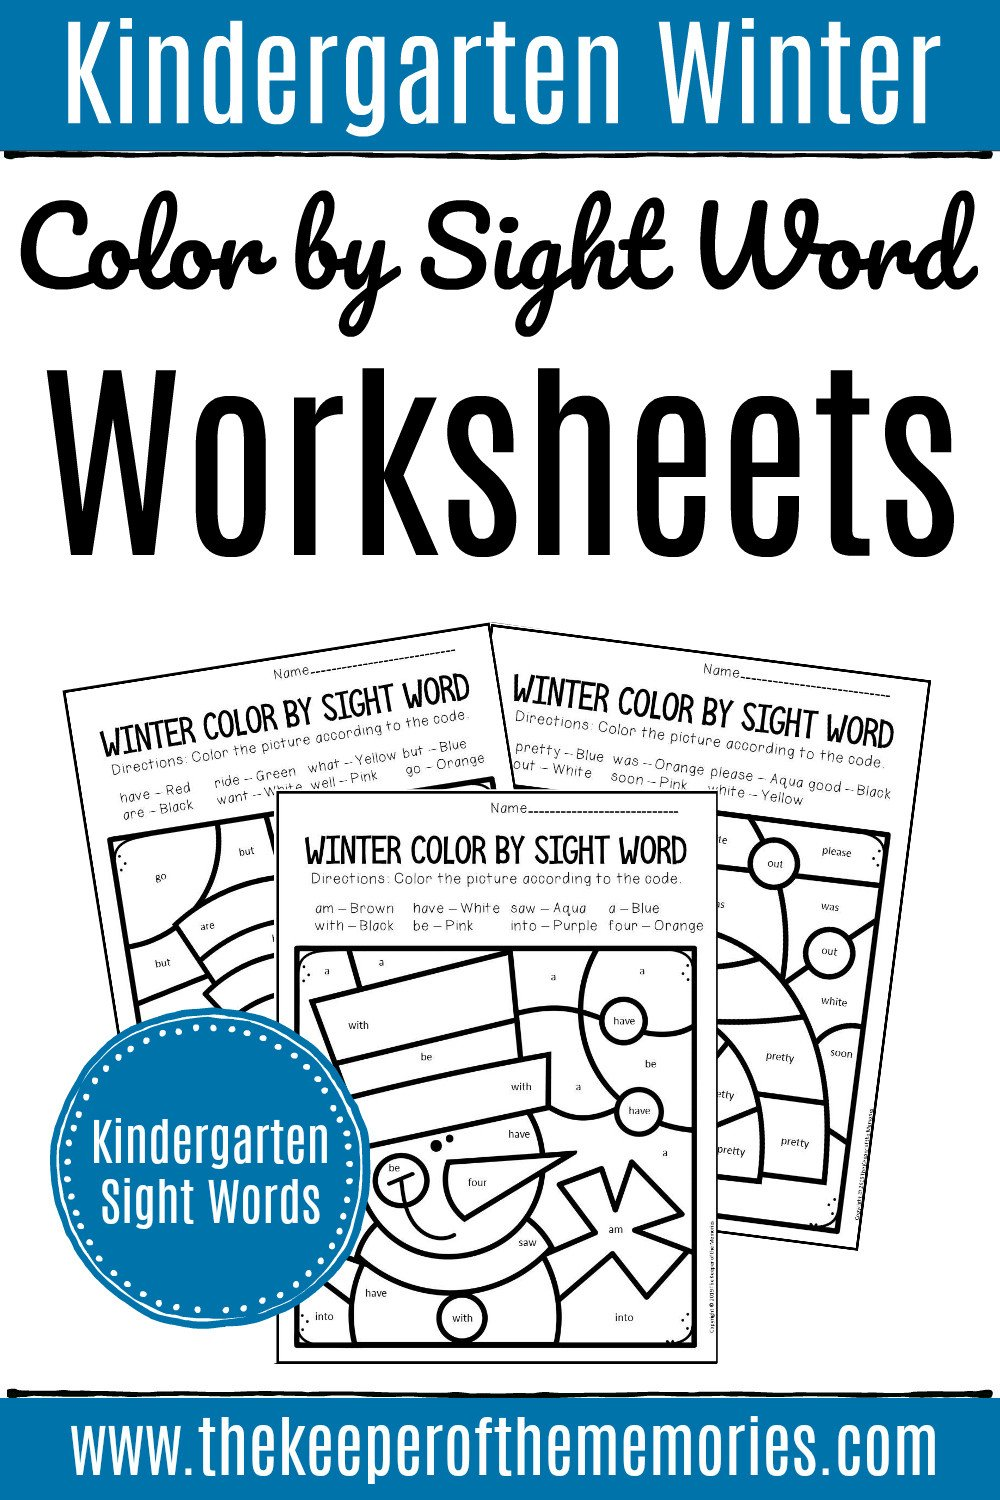 Kindergarten Color Words Worksheets Color by Sight Word Winter Kindergarten Worksheets the